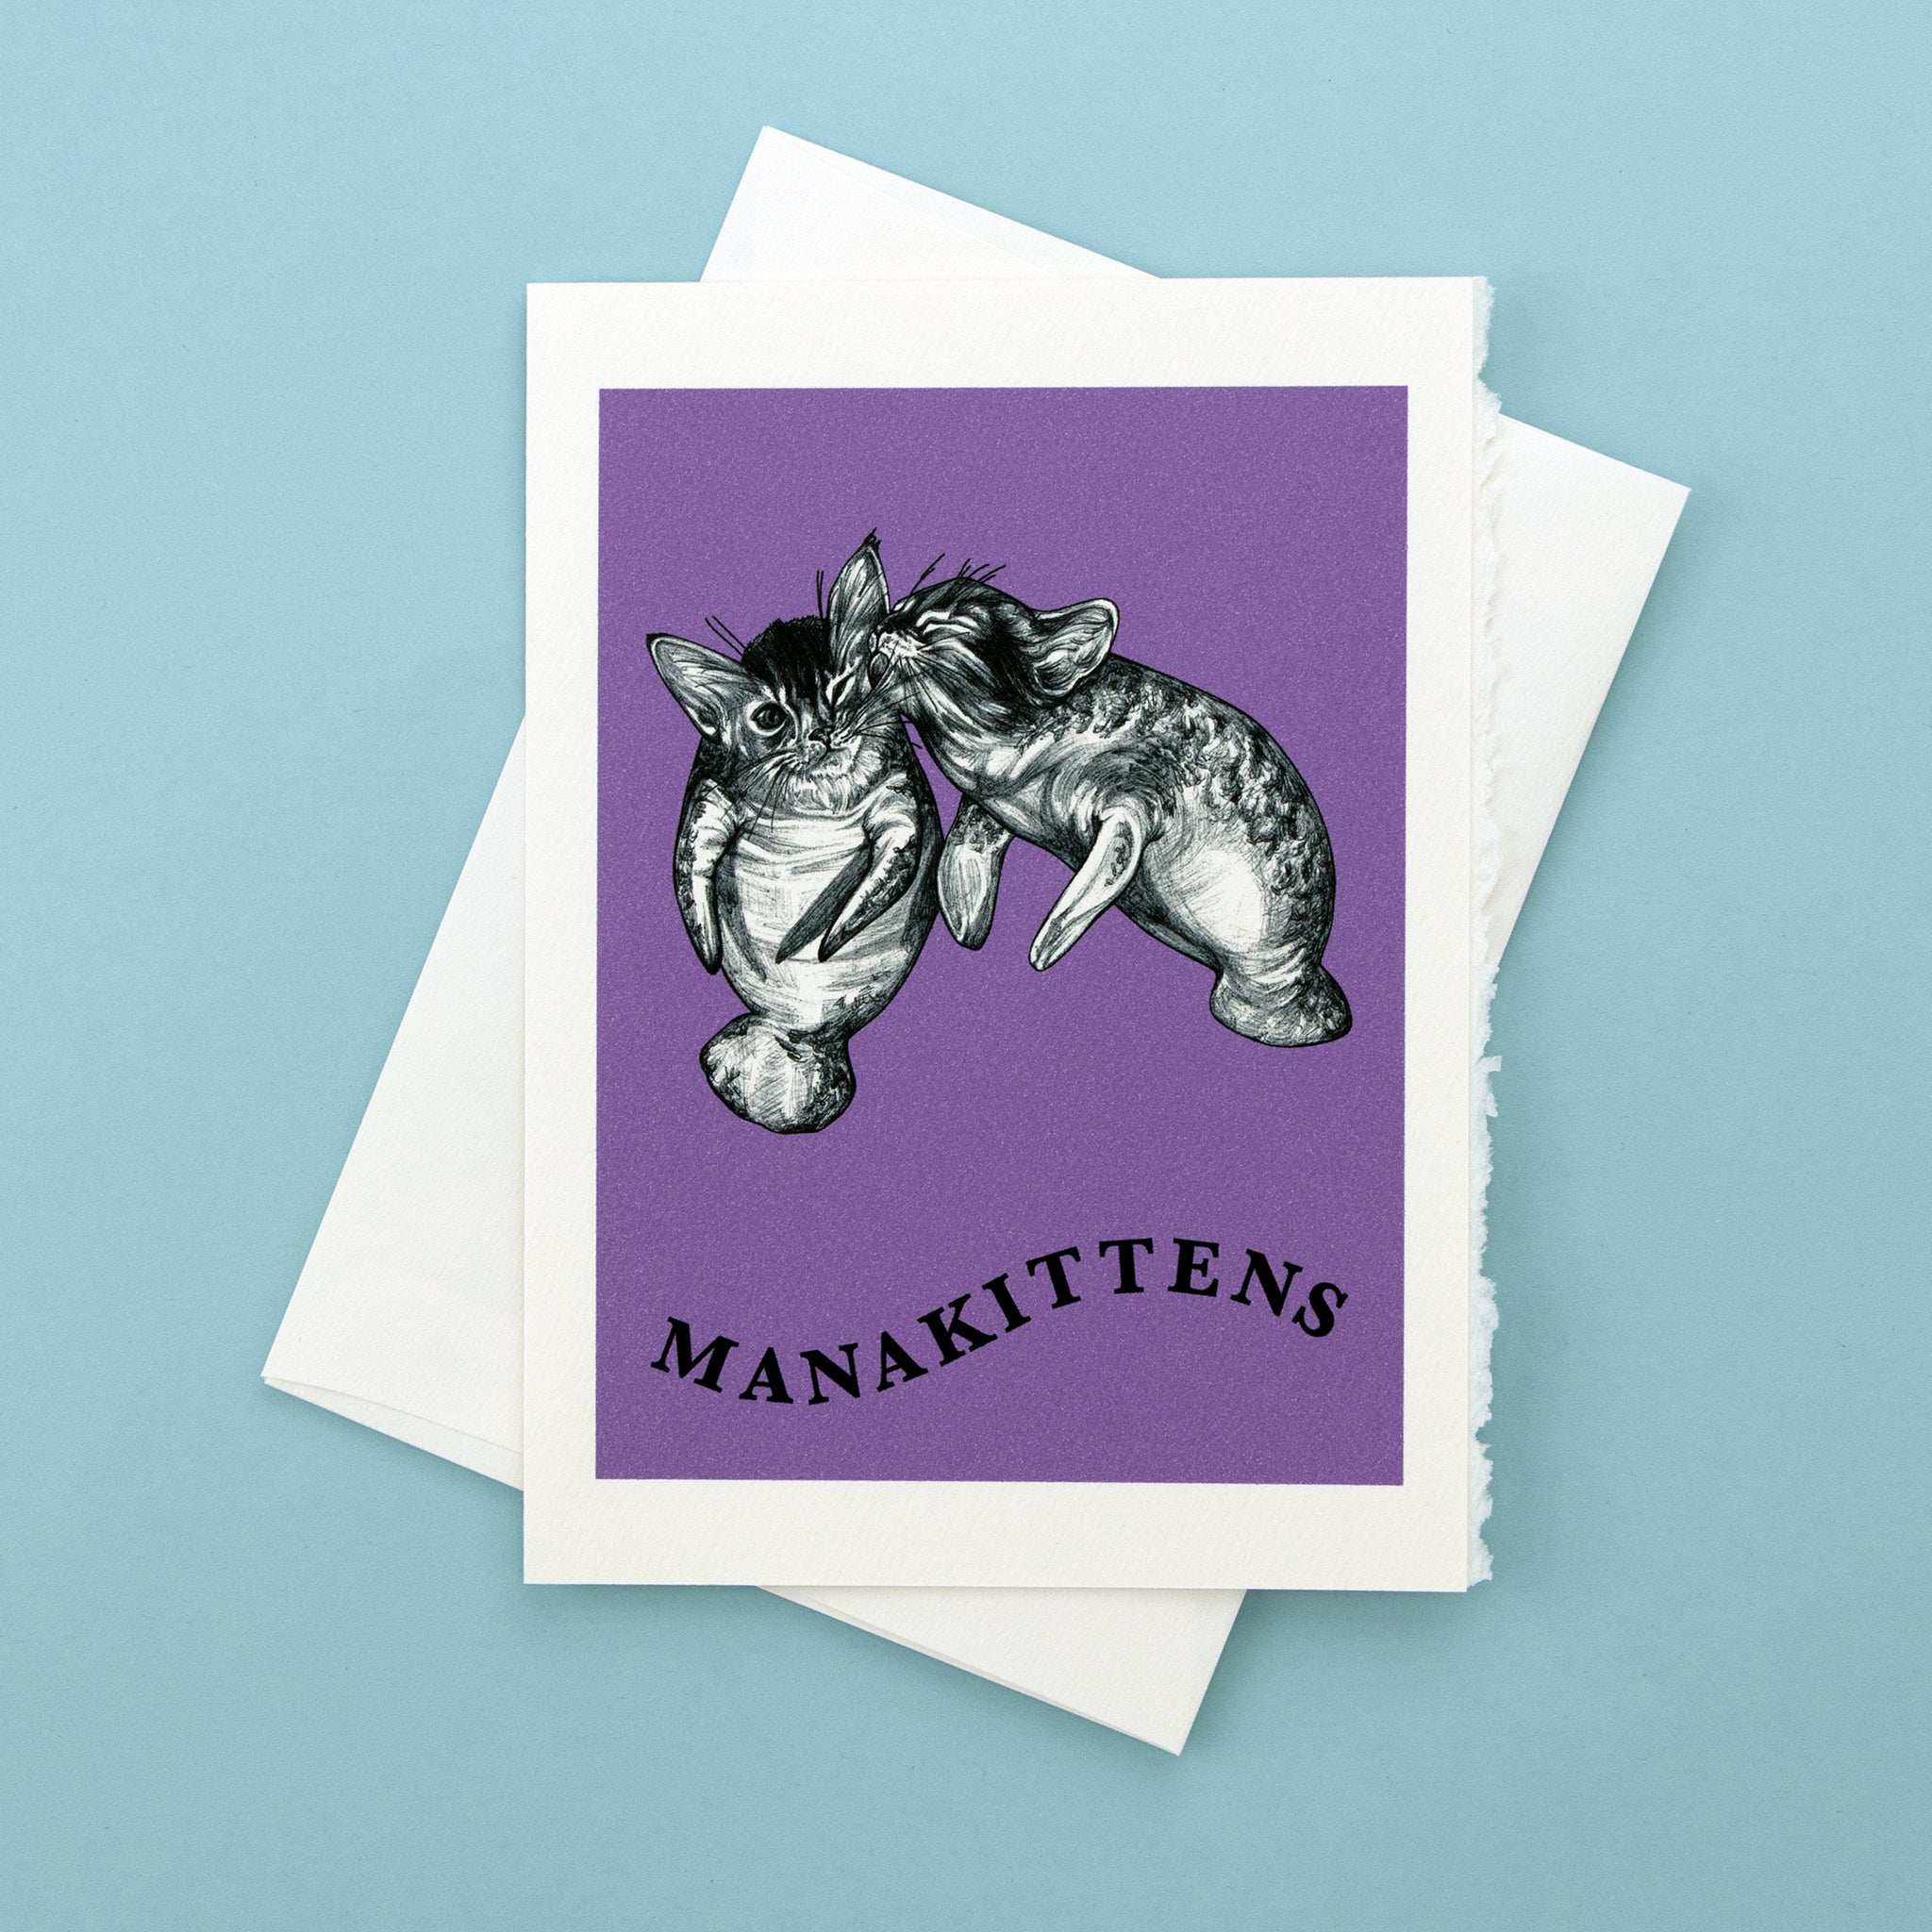 "Manakittens 5x7"" Greeting Card"